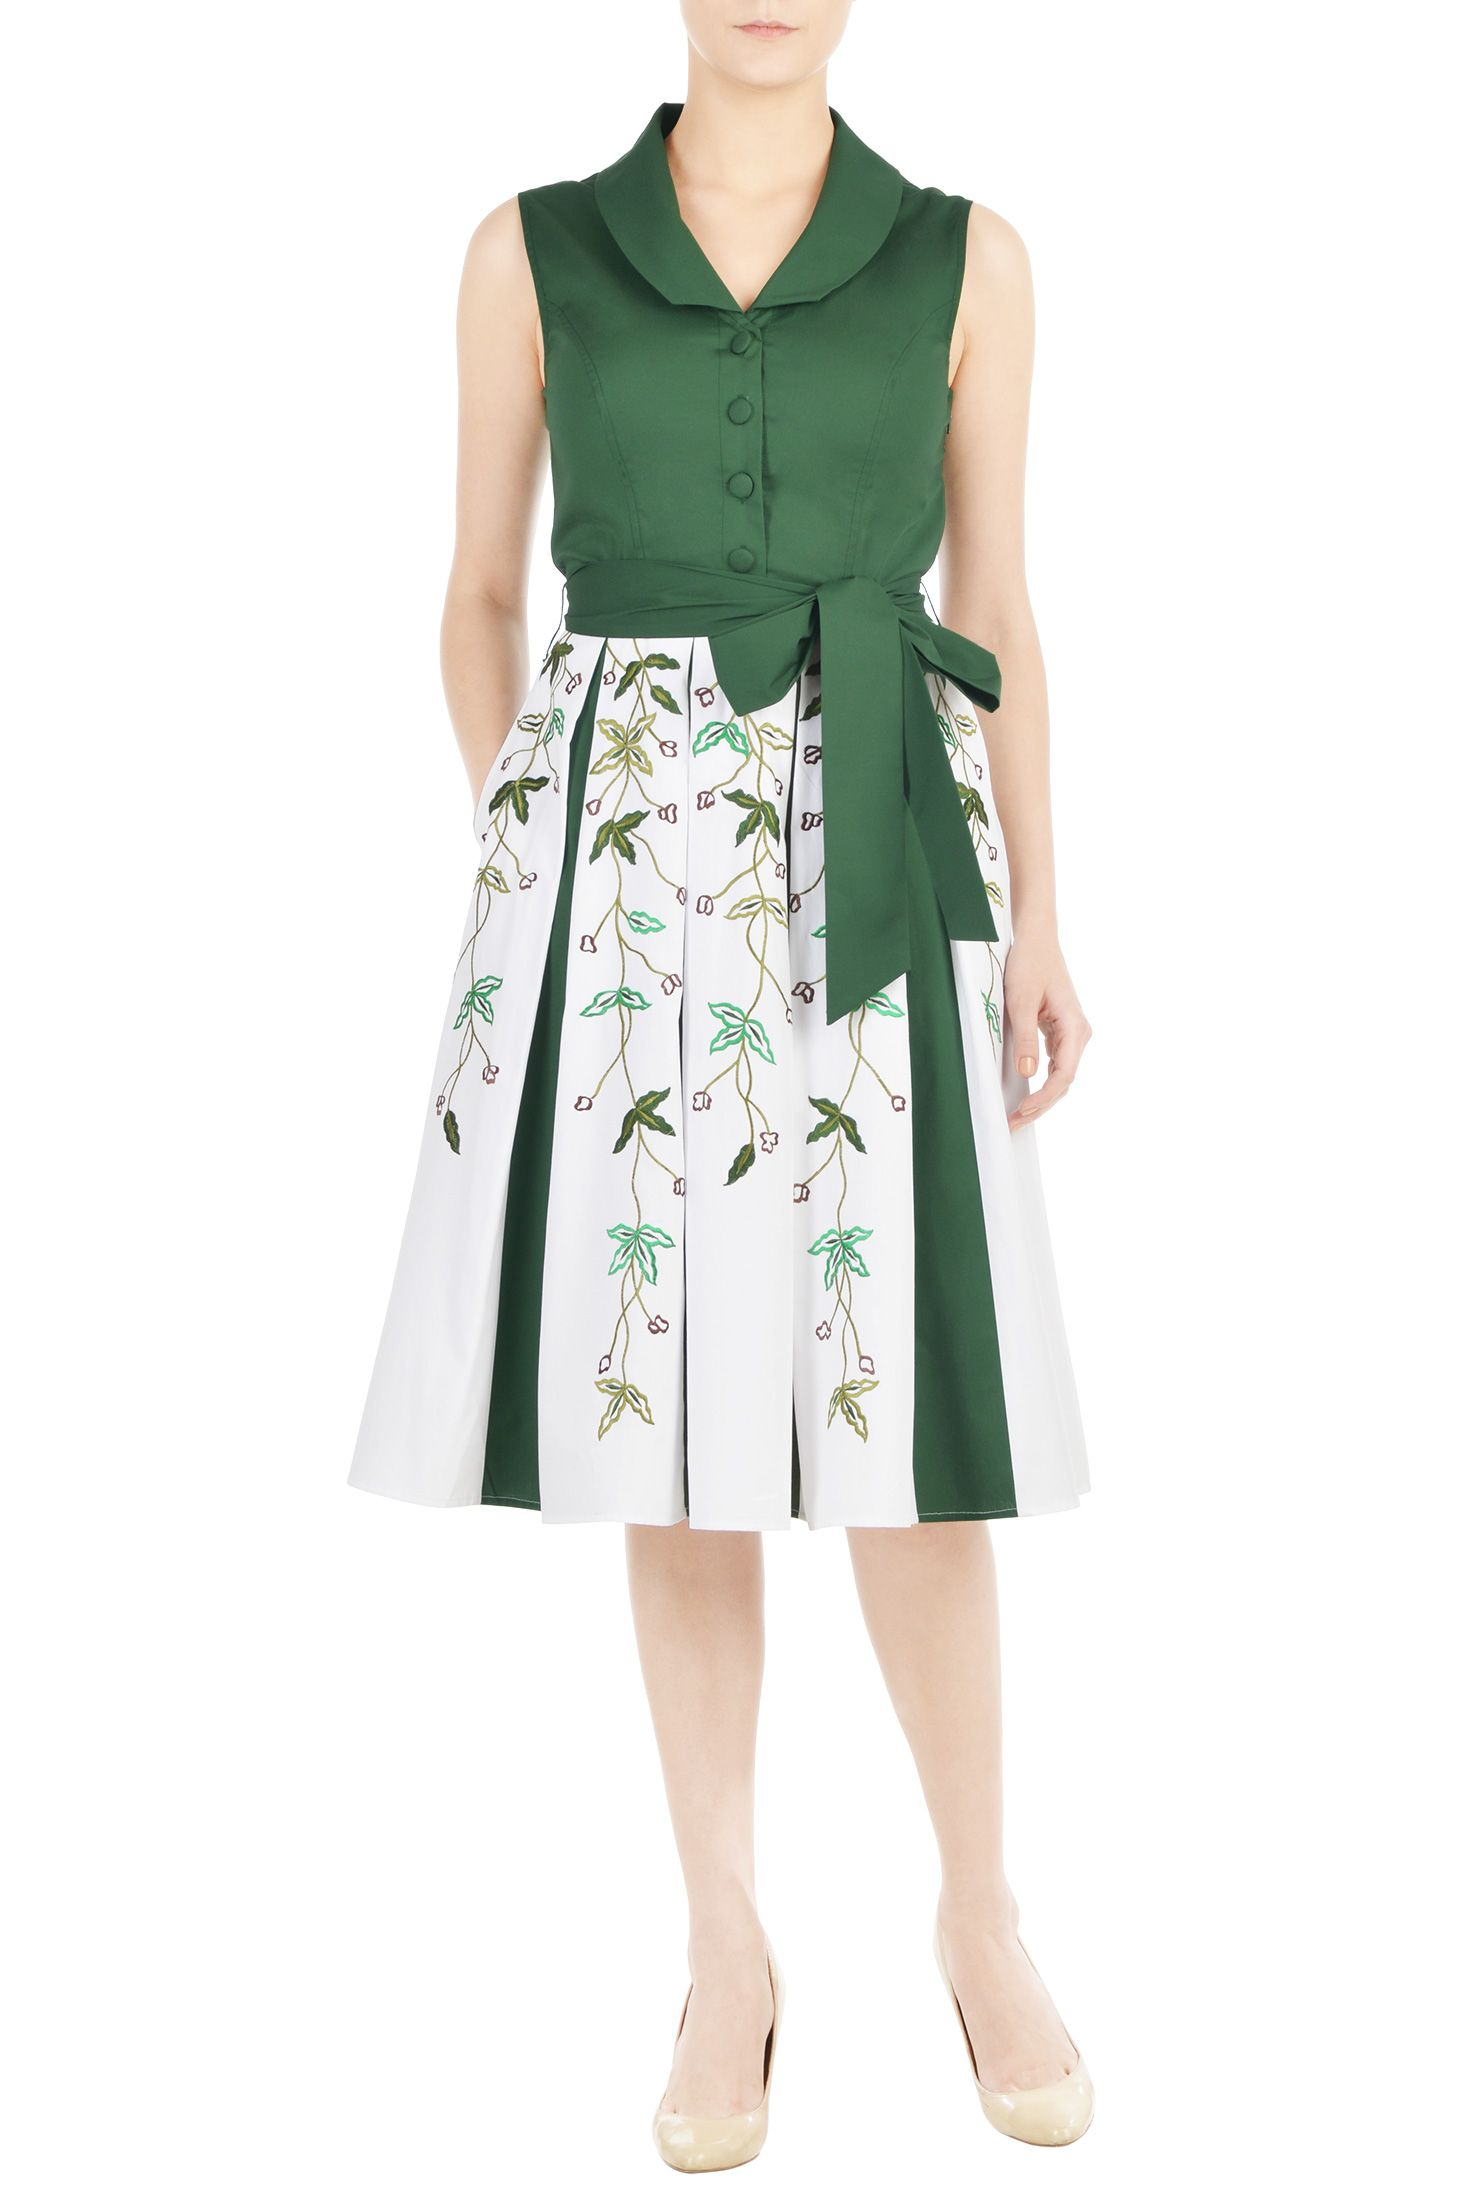 A shawl collar frames the V-neckline of our cotton poplin dress,  cinched at the waist with a sash tie belt and flared out to an inset box pleat skirt with floral vine embellishments.